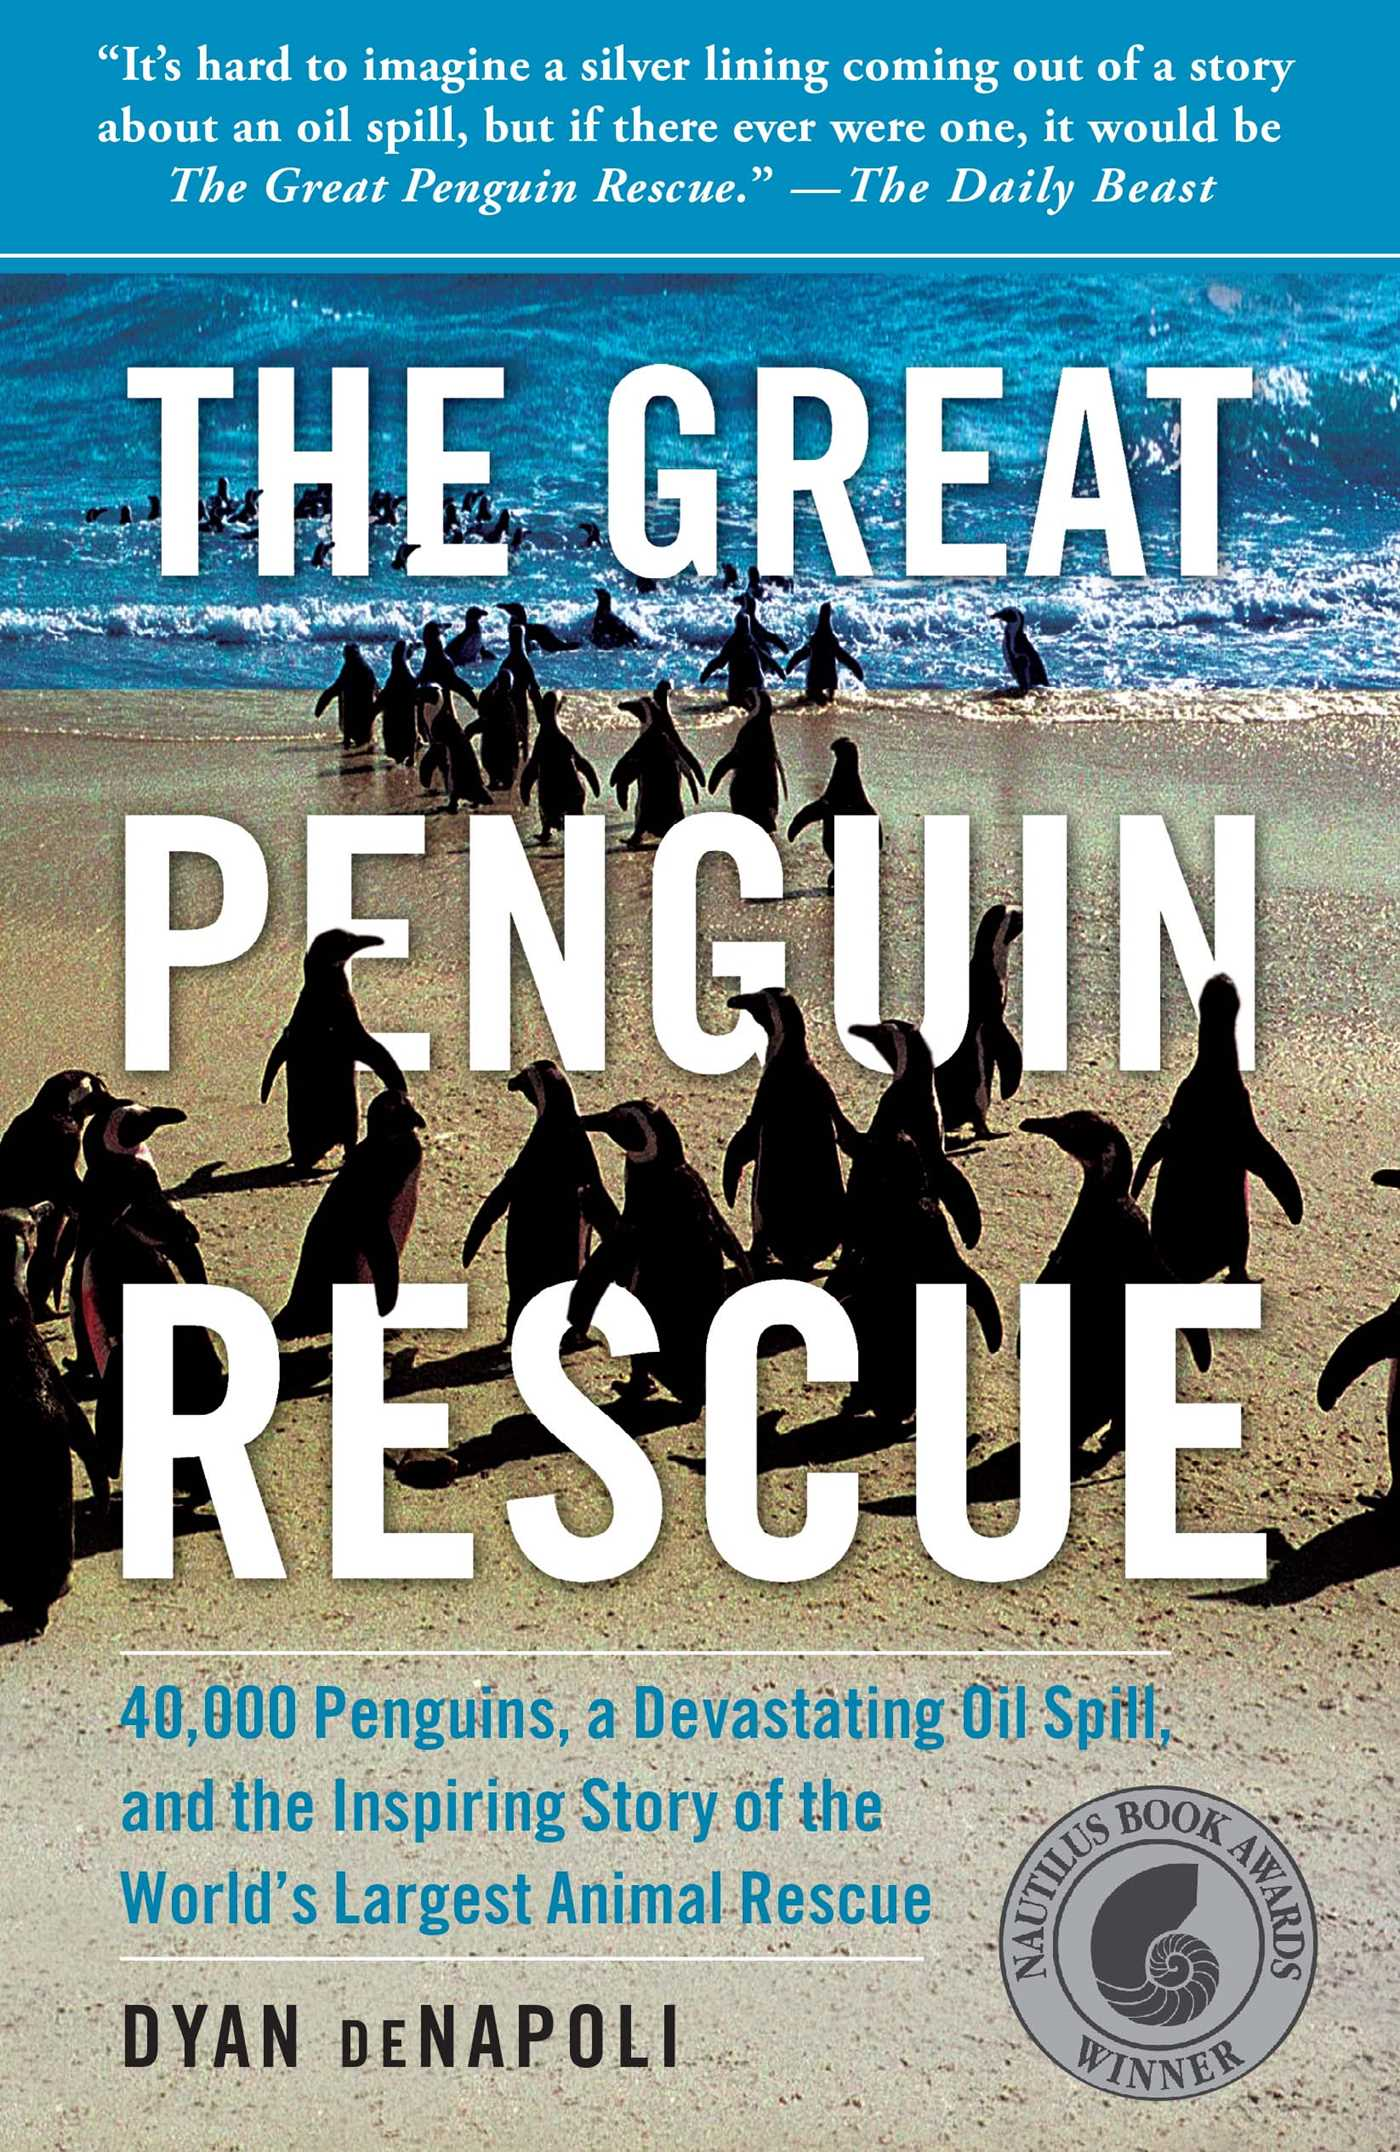 The-great-penguin-rescue-9781439148181_hr